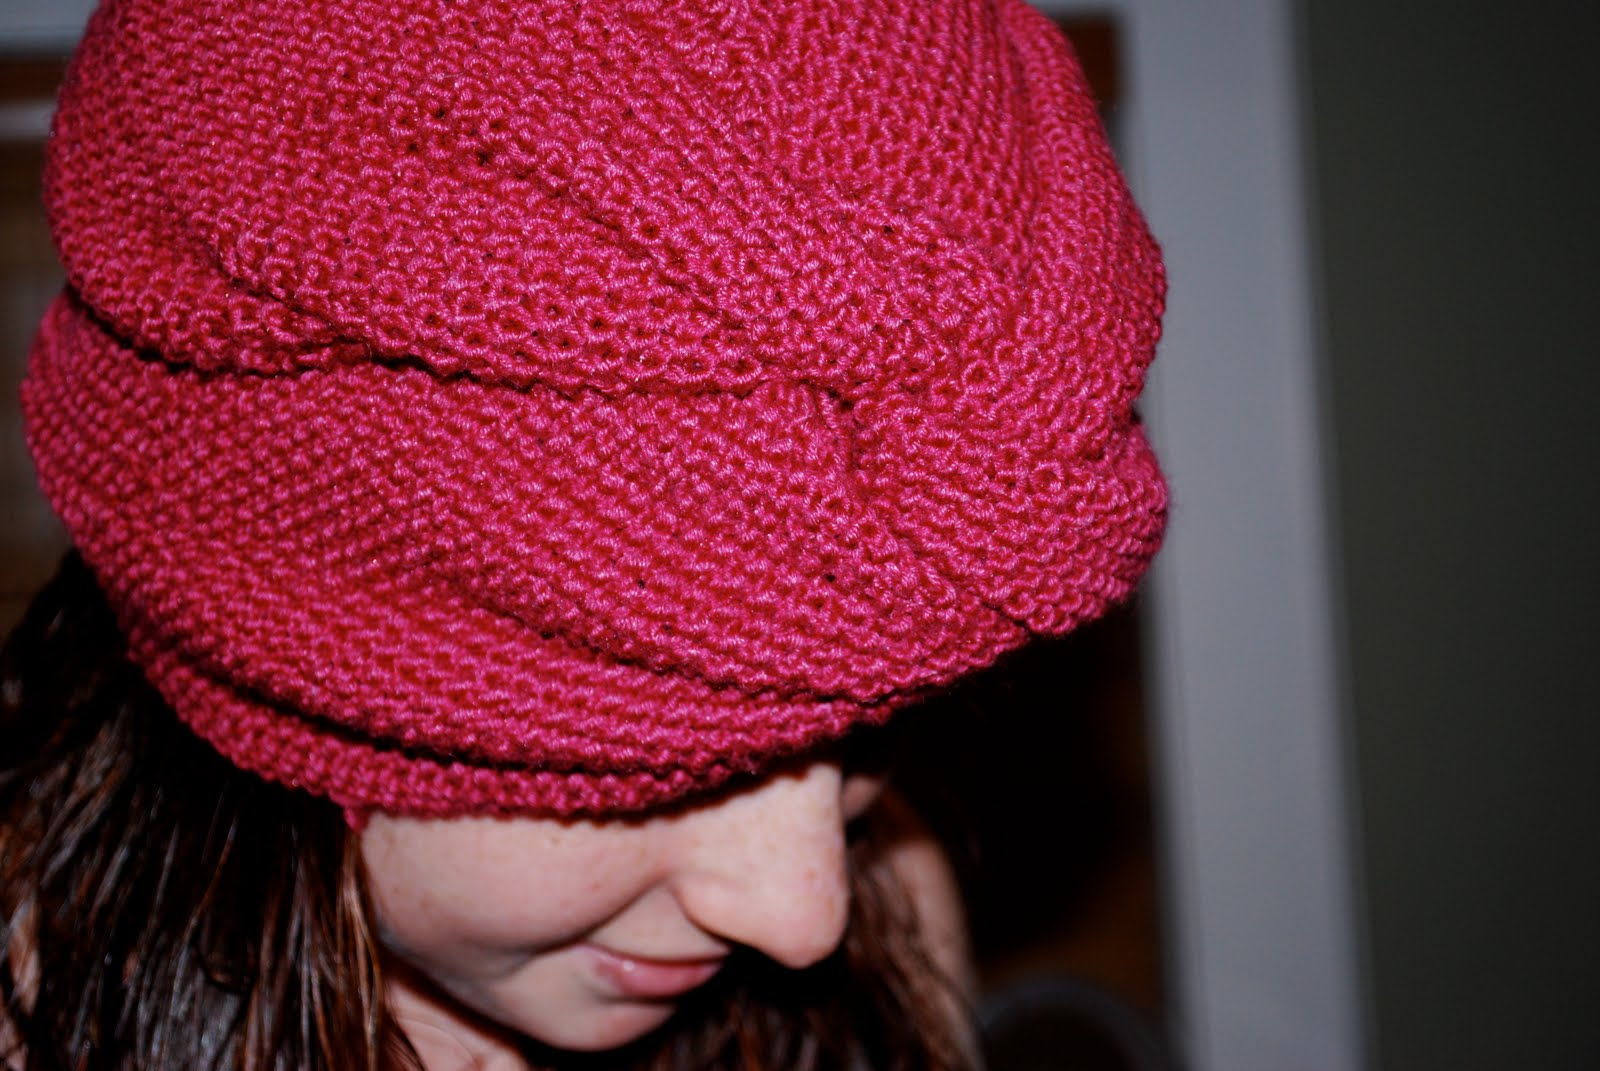 the mints tint: We knit: Vintage Turban